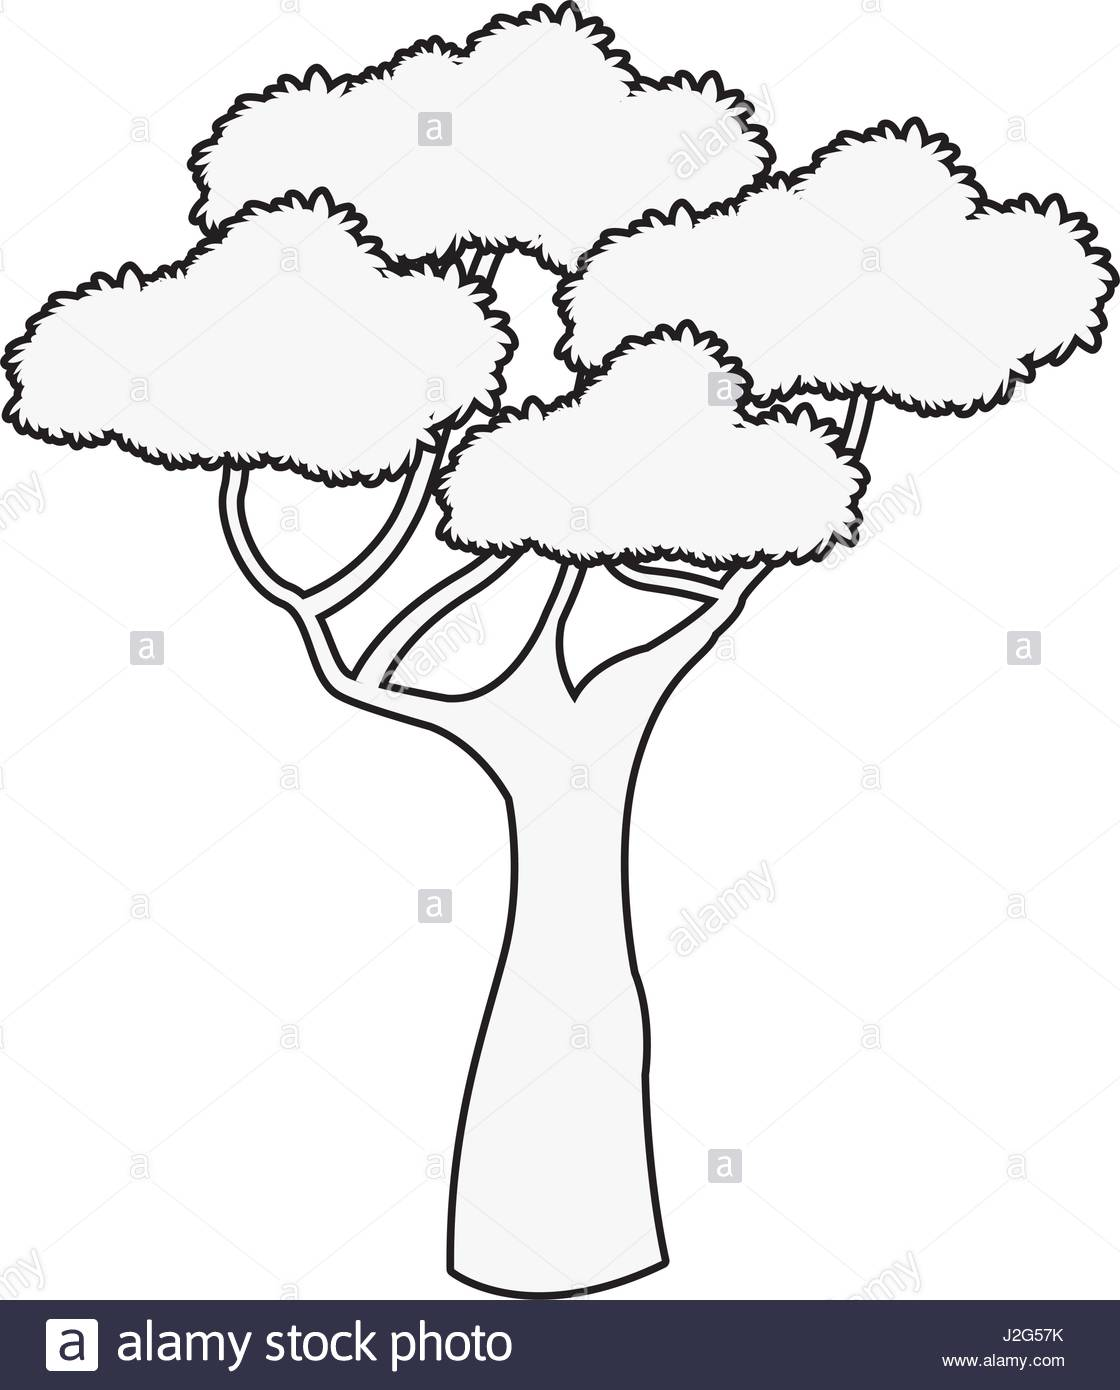 1120x1390 Outline Image Of Tree